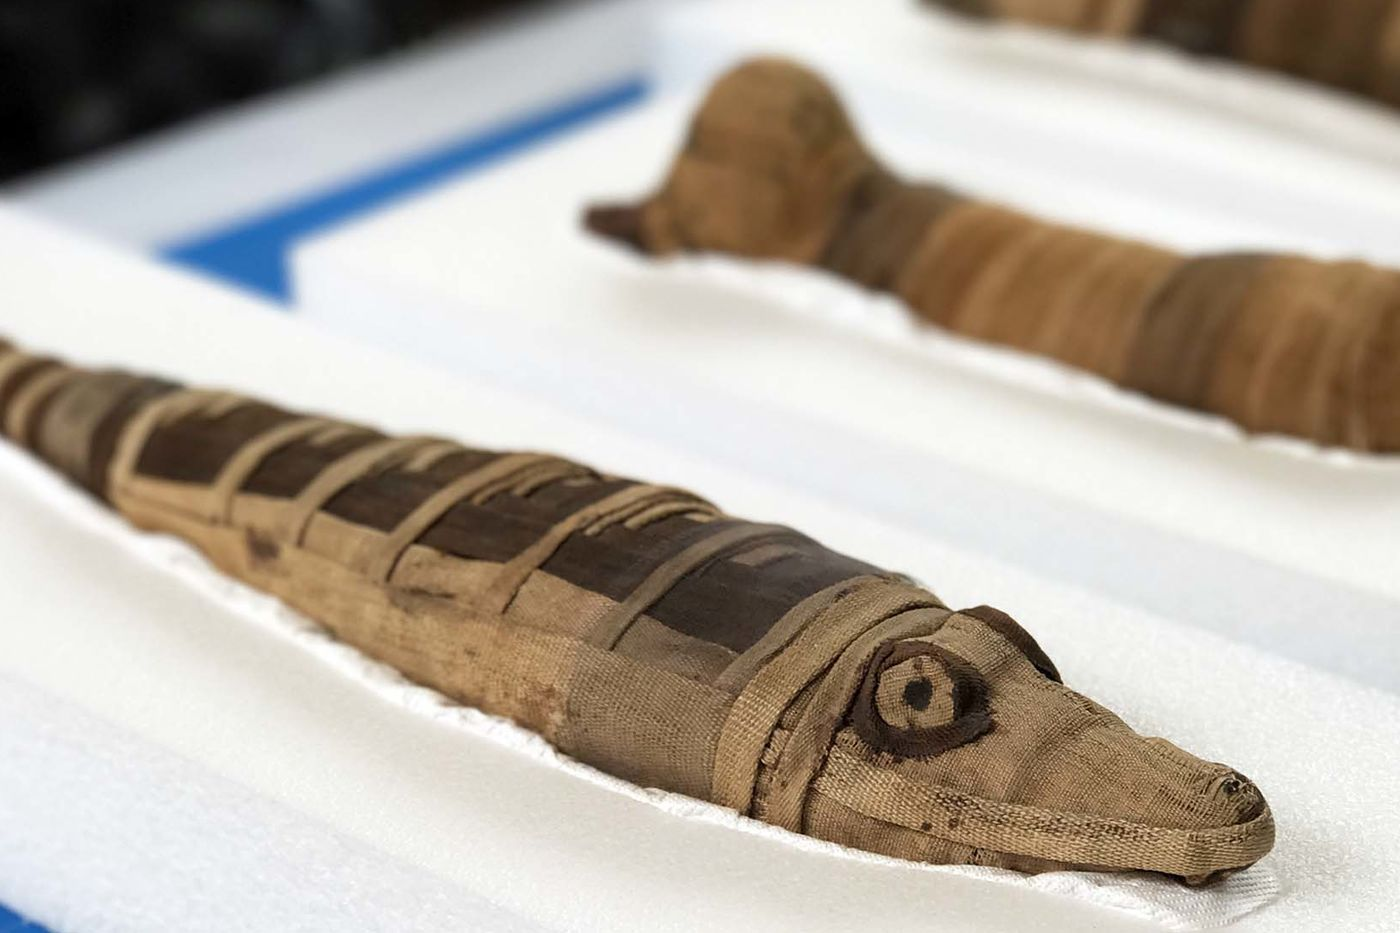 A small crocodile mummy wrapped in brown cloth with the eyes drawn on, and other similar bundles in the background